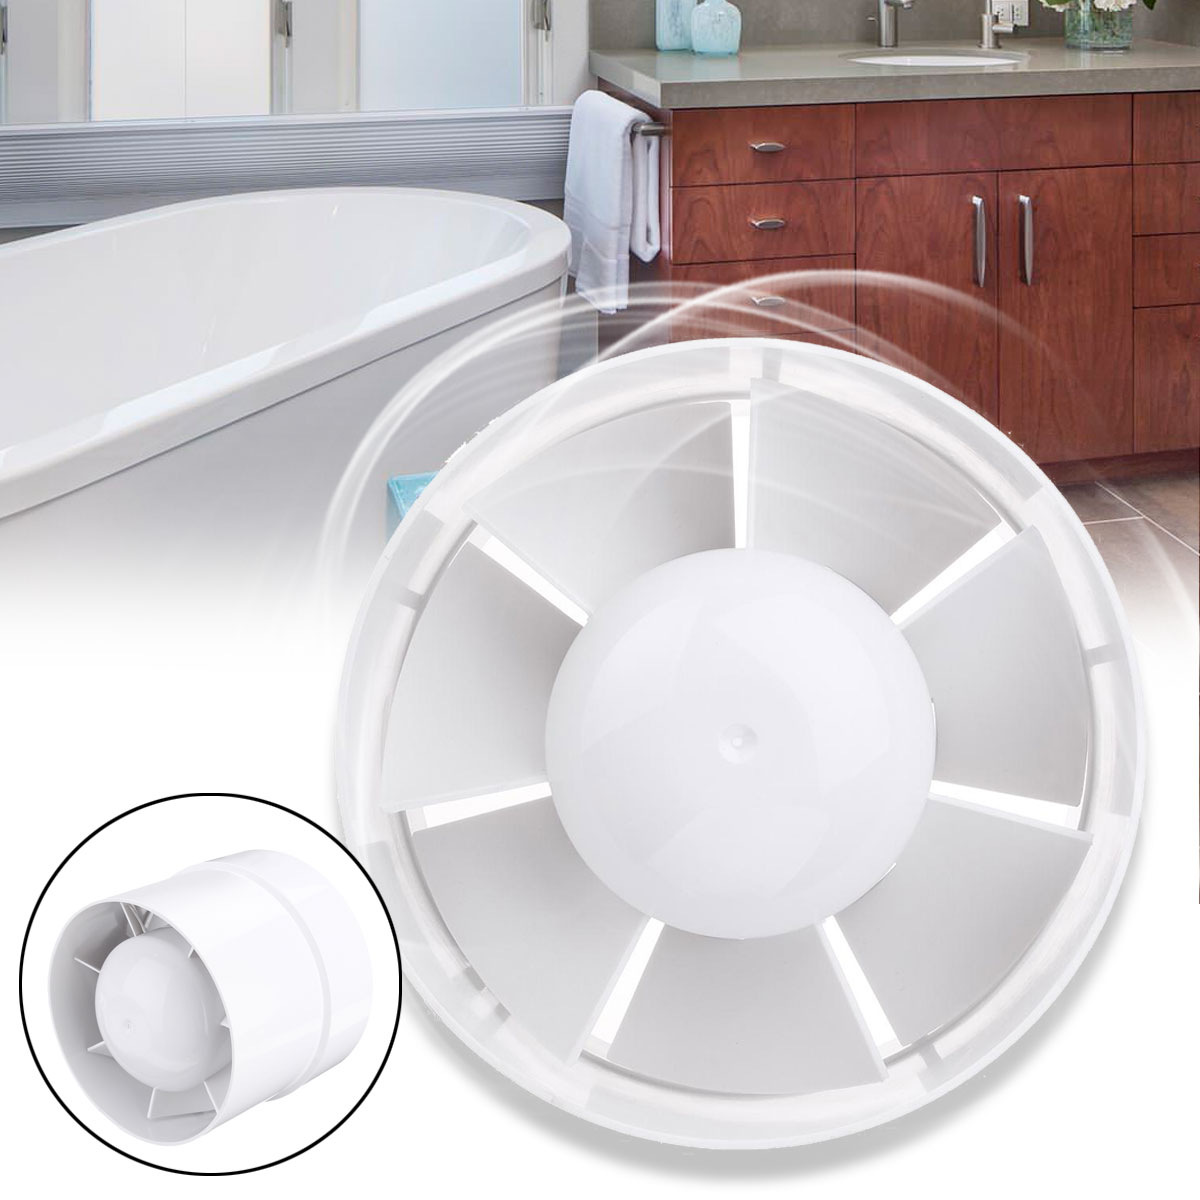 Bathroom Air Vent | Us 19 31 48 Off 4 5 6 Inch Dusted Inline Fan Bathroom Exhaust Ventilator Ventilation Fan Cooling Air Vent Kitchen Wall Ceiling Exhauster Booster In